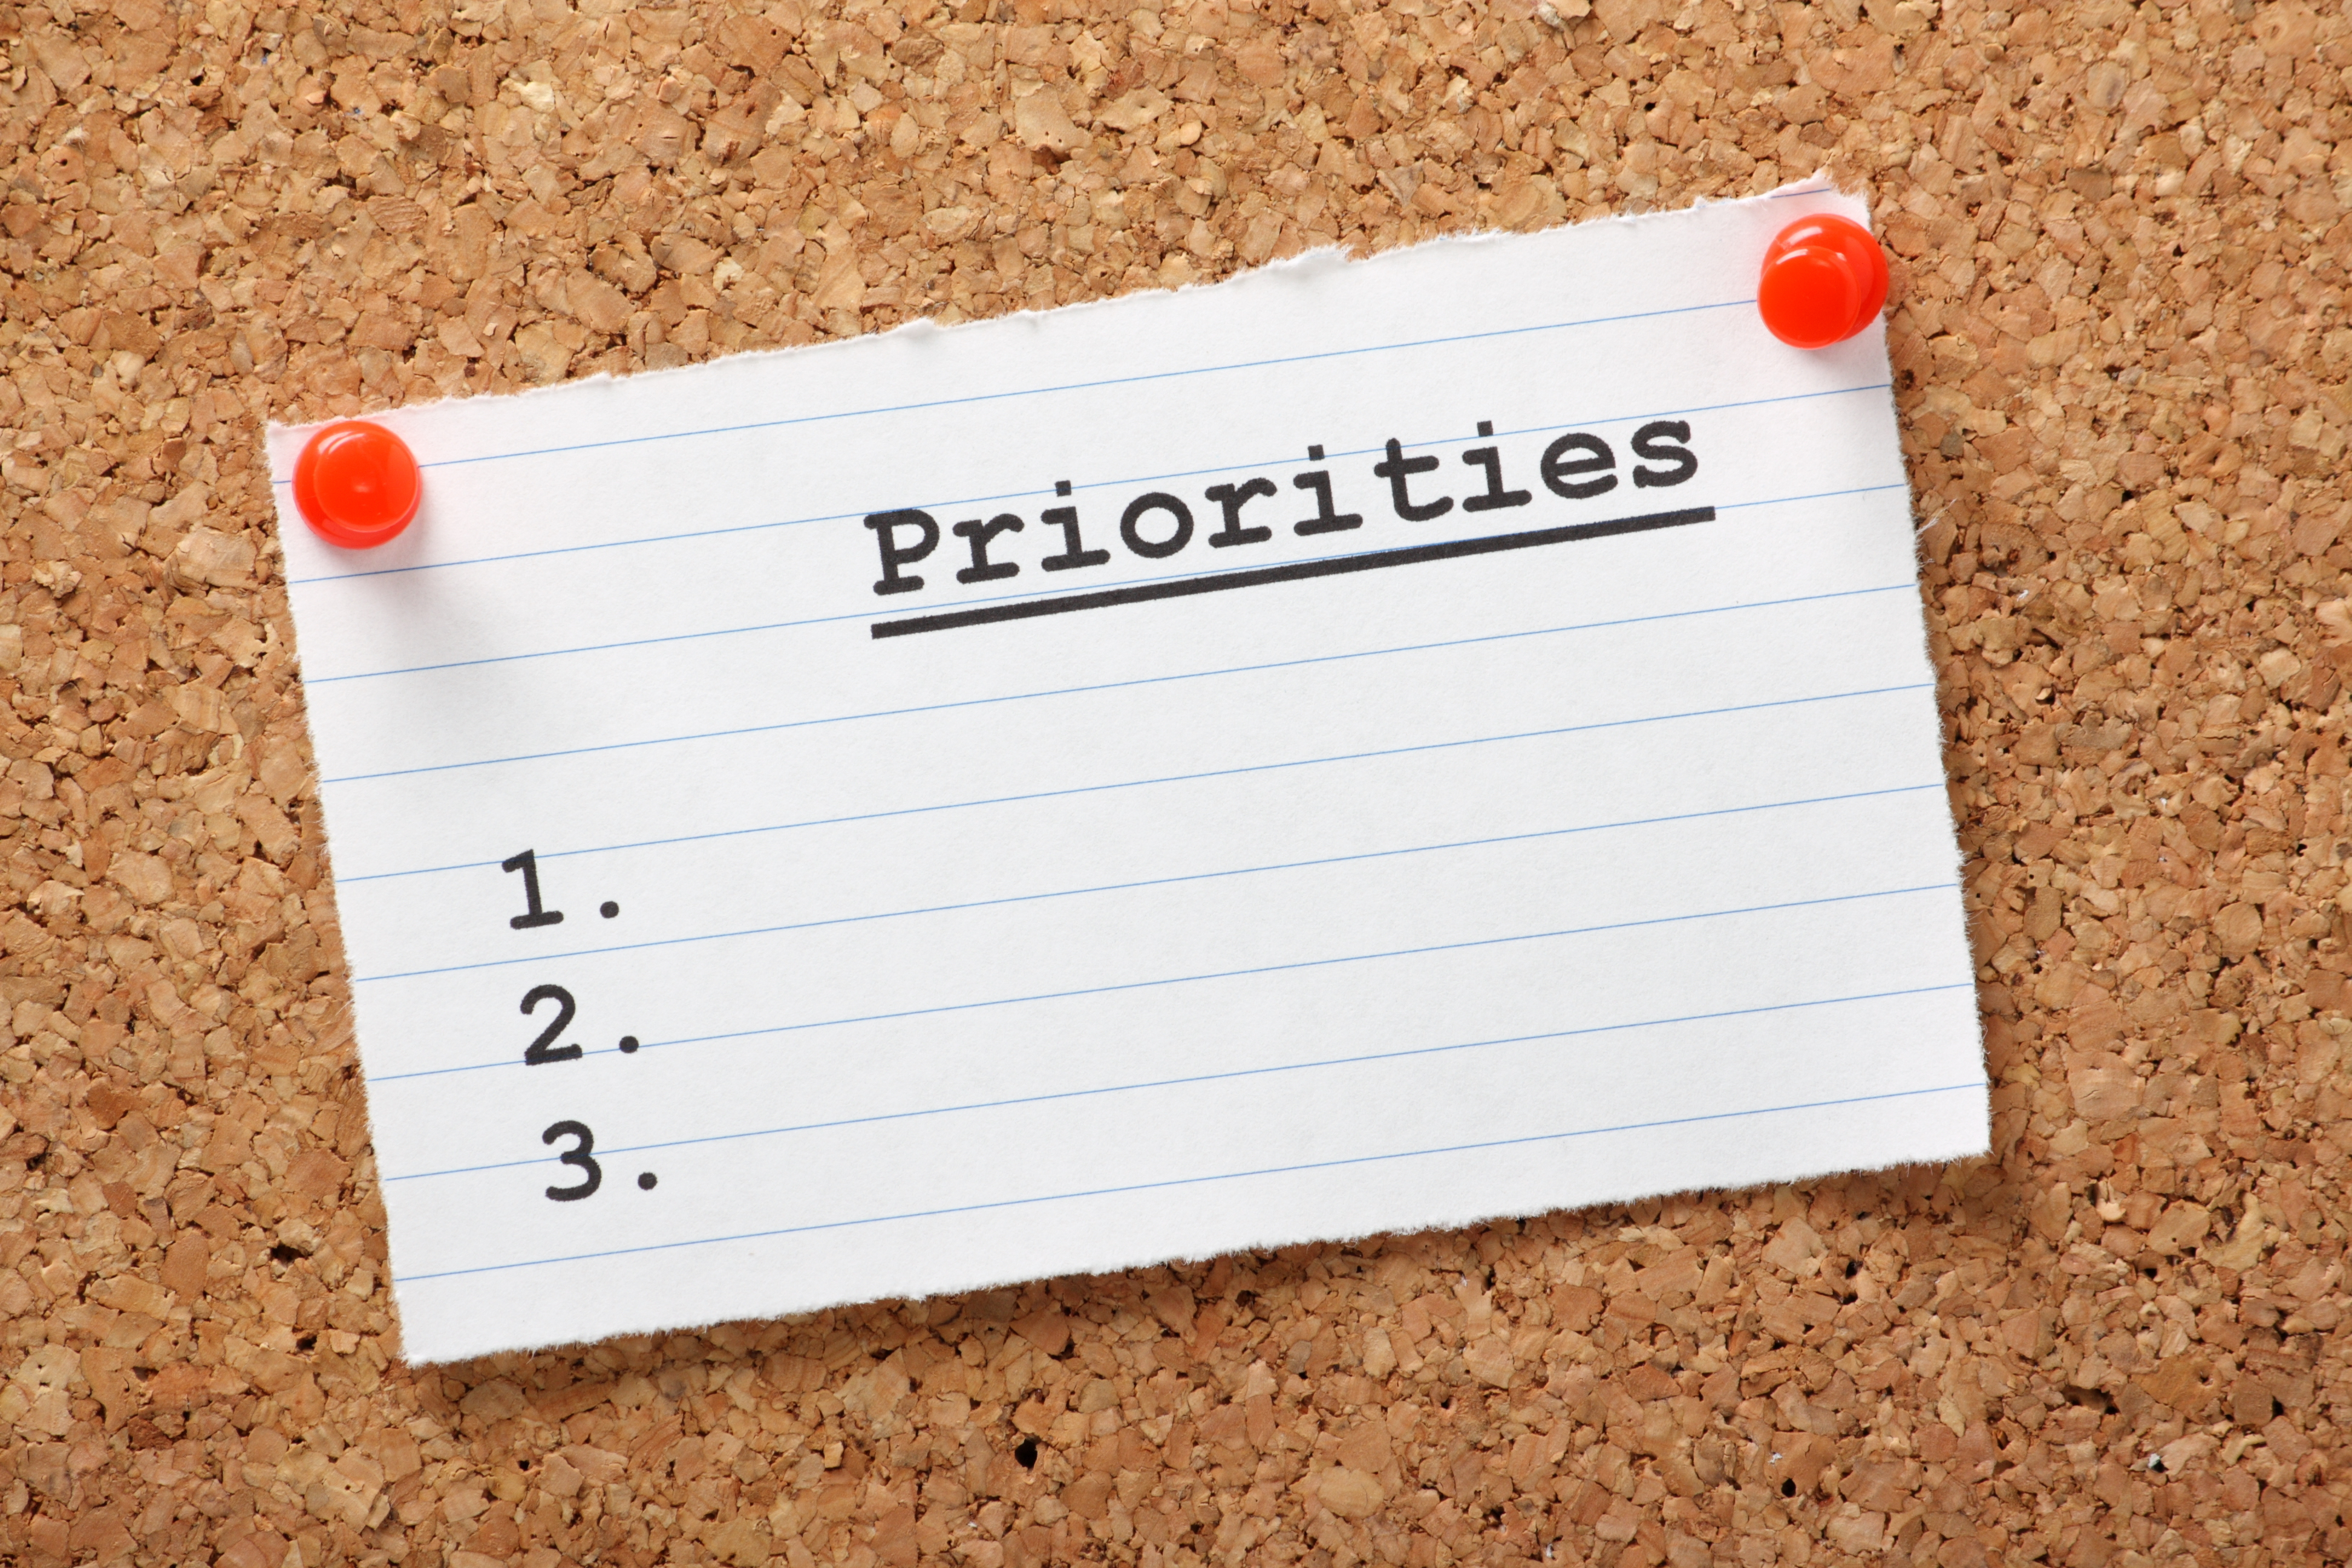 Priorities in life essay